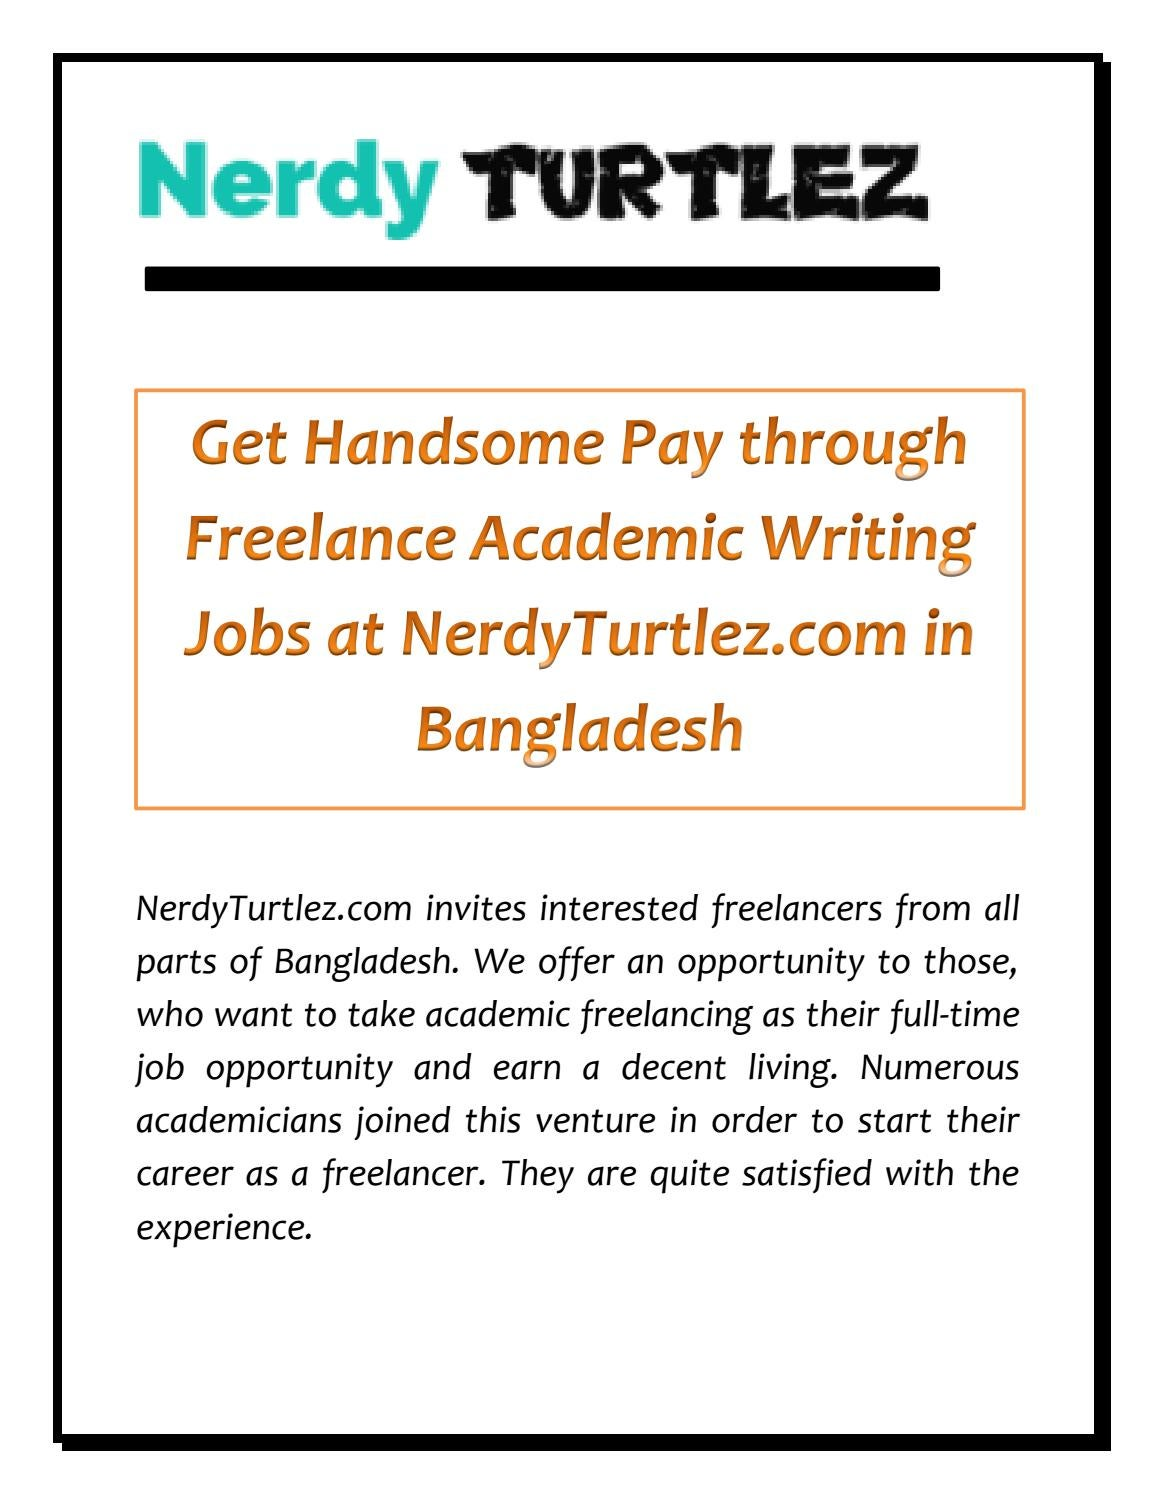 Freelance Writing Jobs for Academic and Business Experts